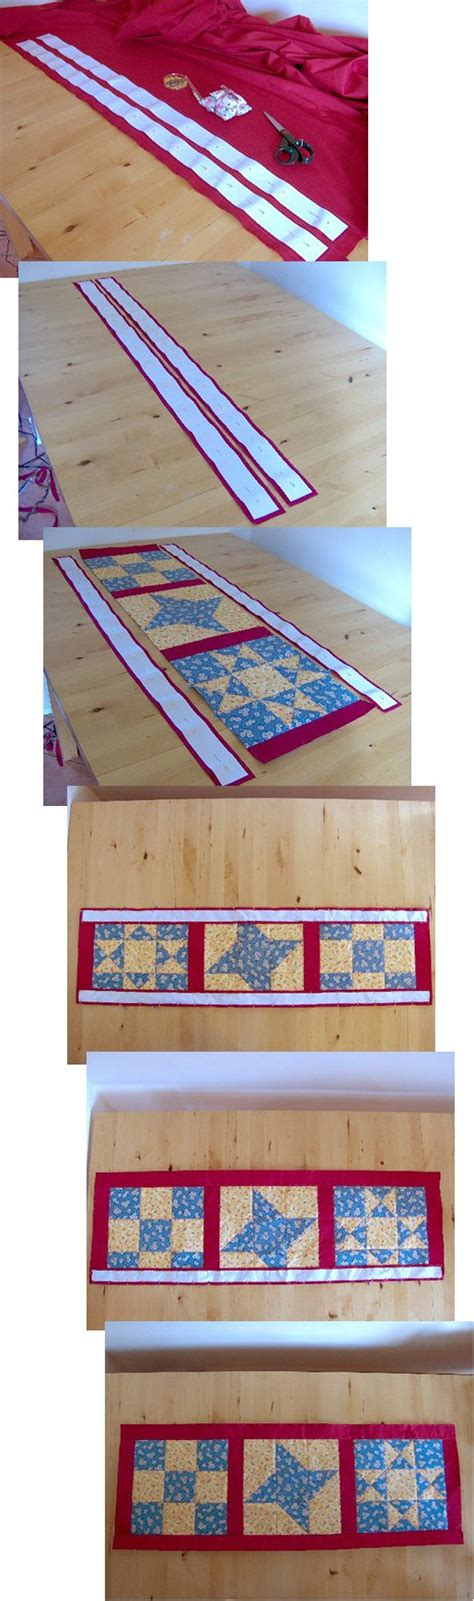 Things to Make and Do   Patchwork and Quilting; Make a